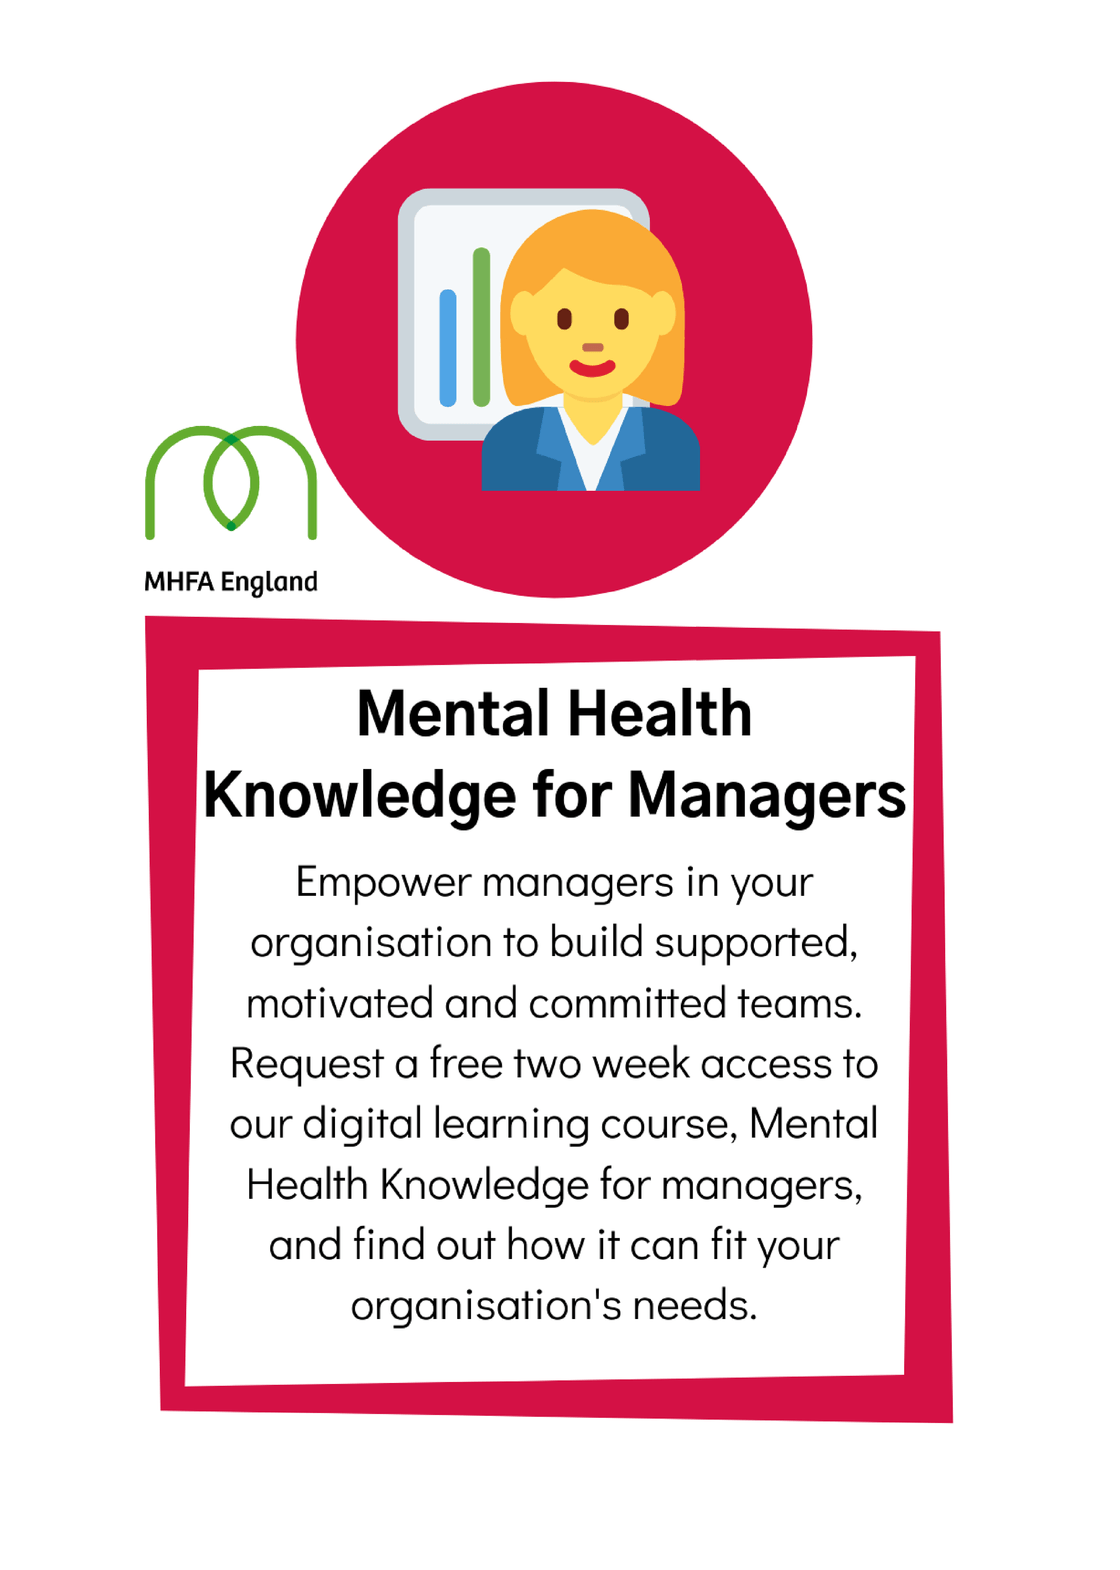 Mental Health Knowledge for Managers